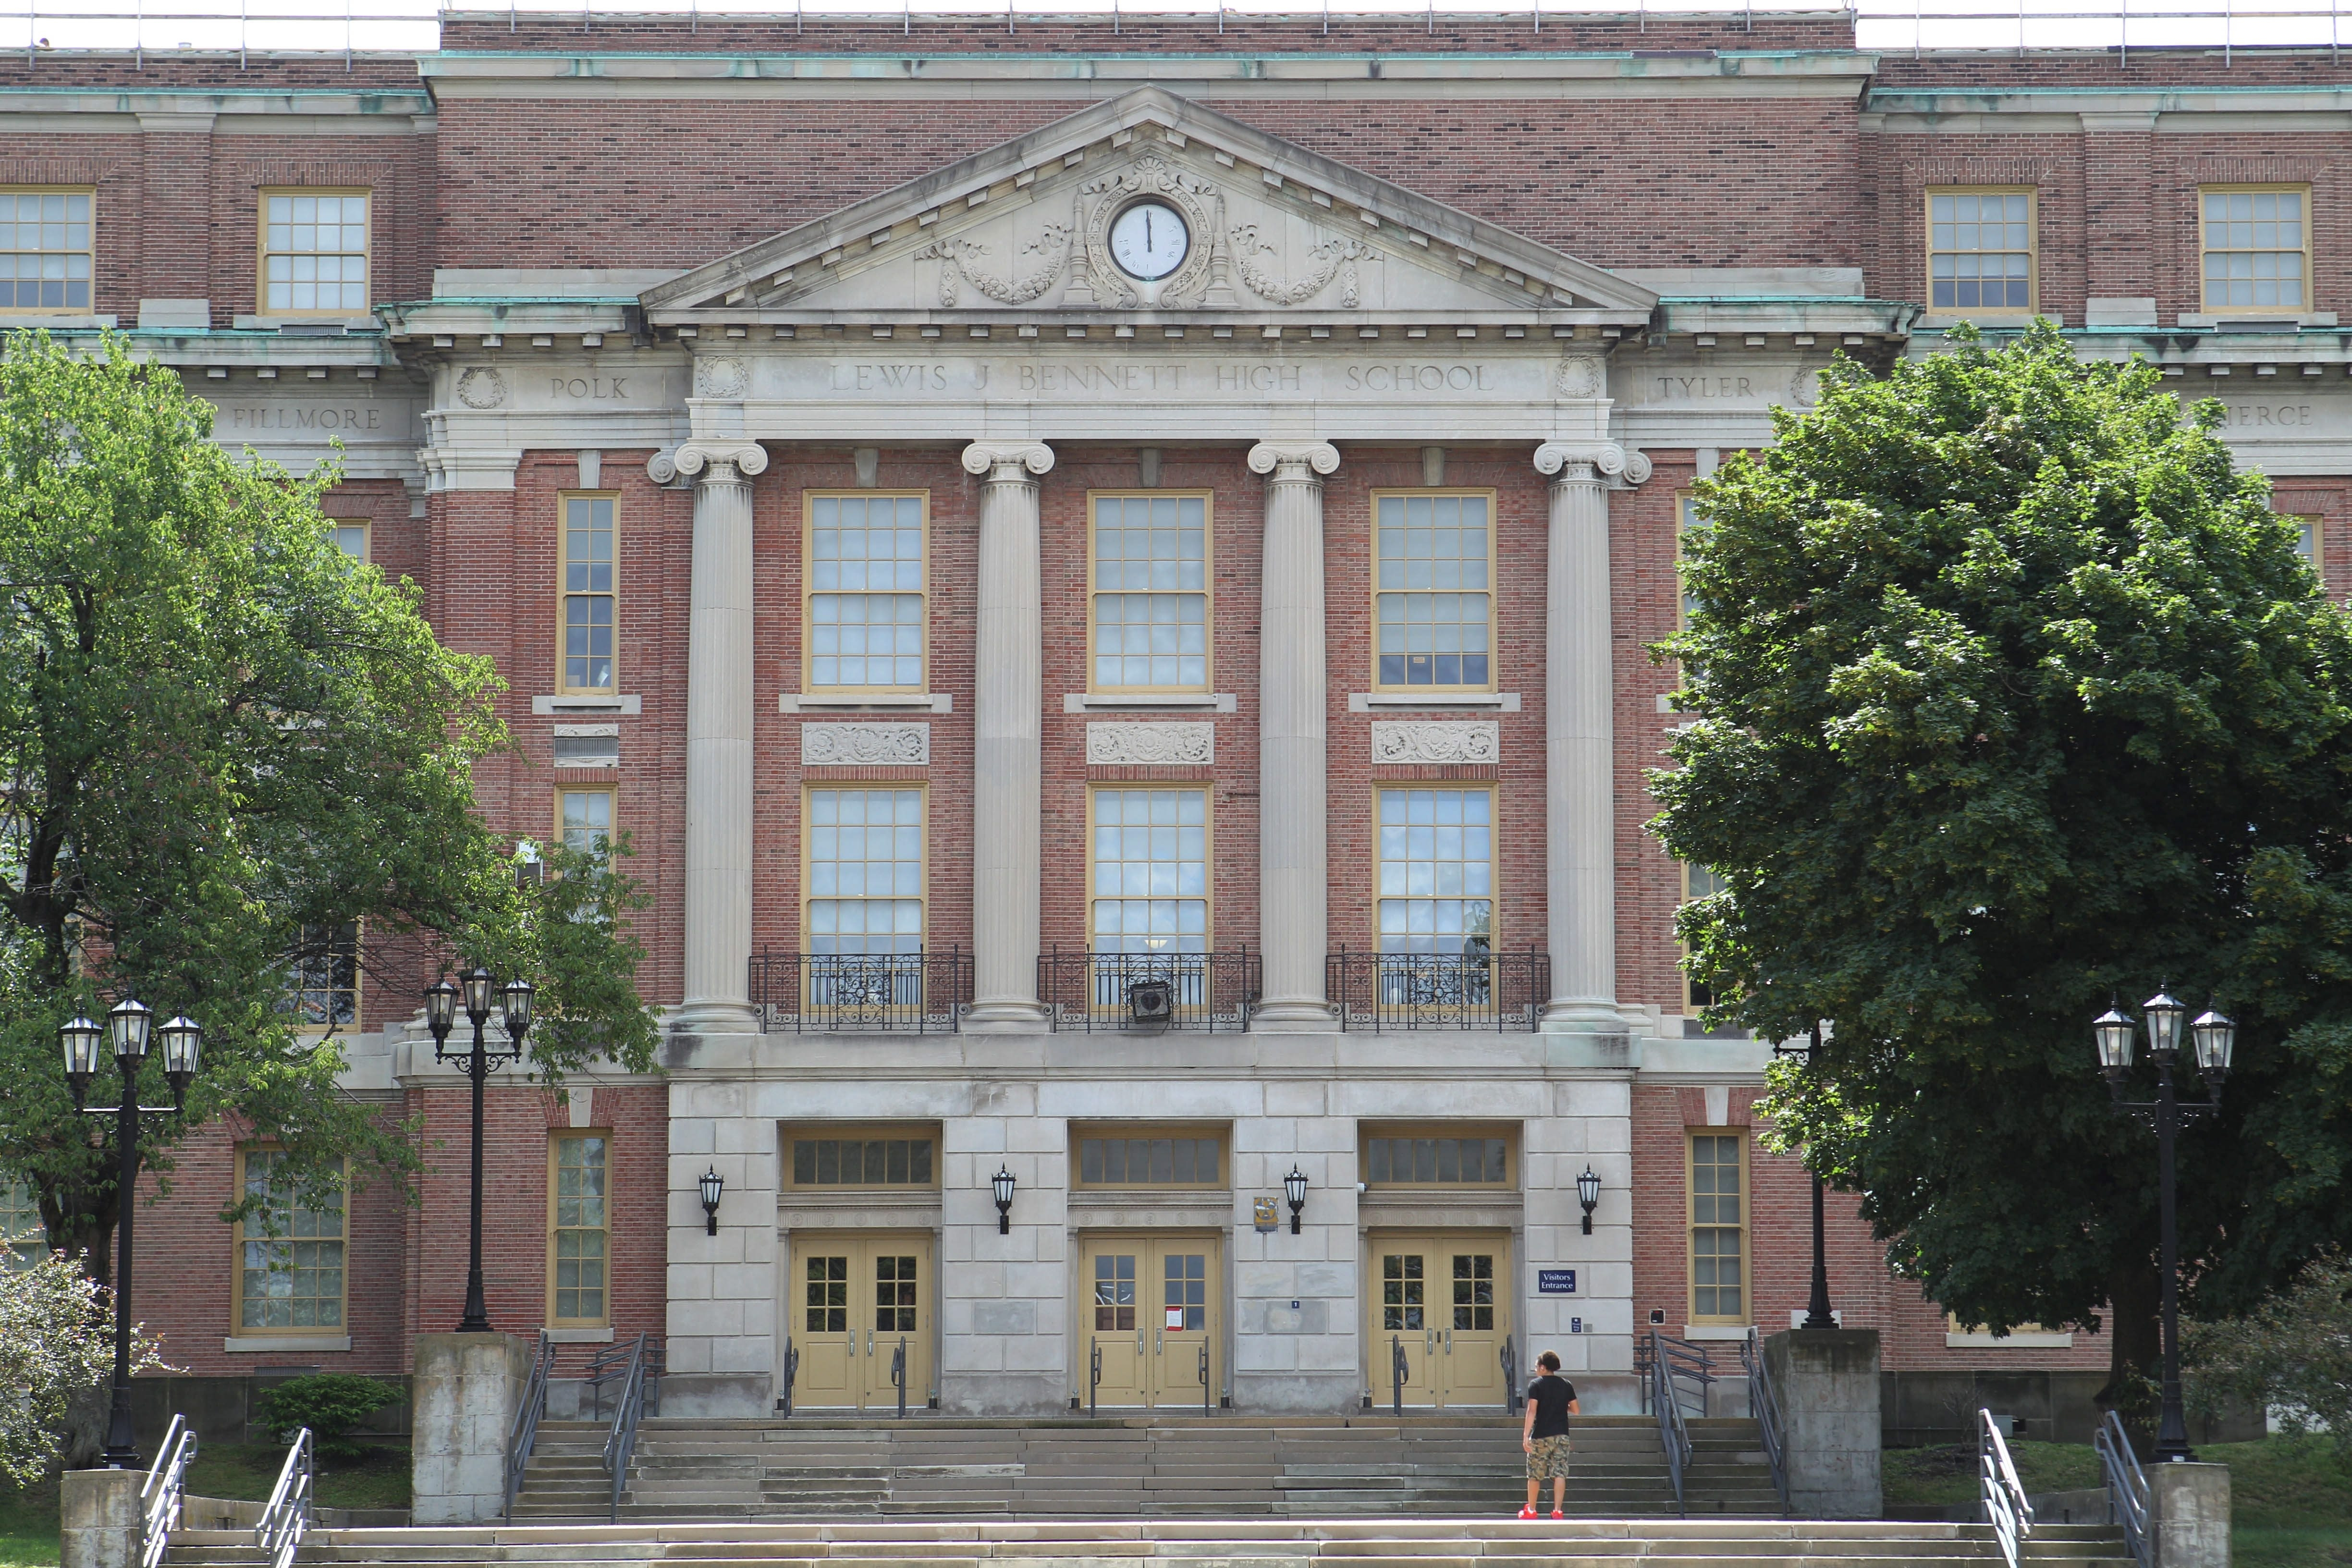 The visionary plan to turn Bennett High School into a school for science and technology is on hold because the school district falied to come up with a workable plan. (Buffalo News file photo)